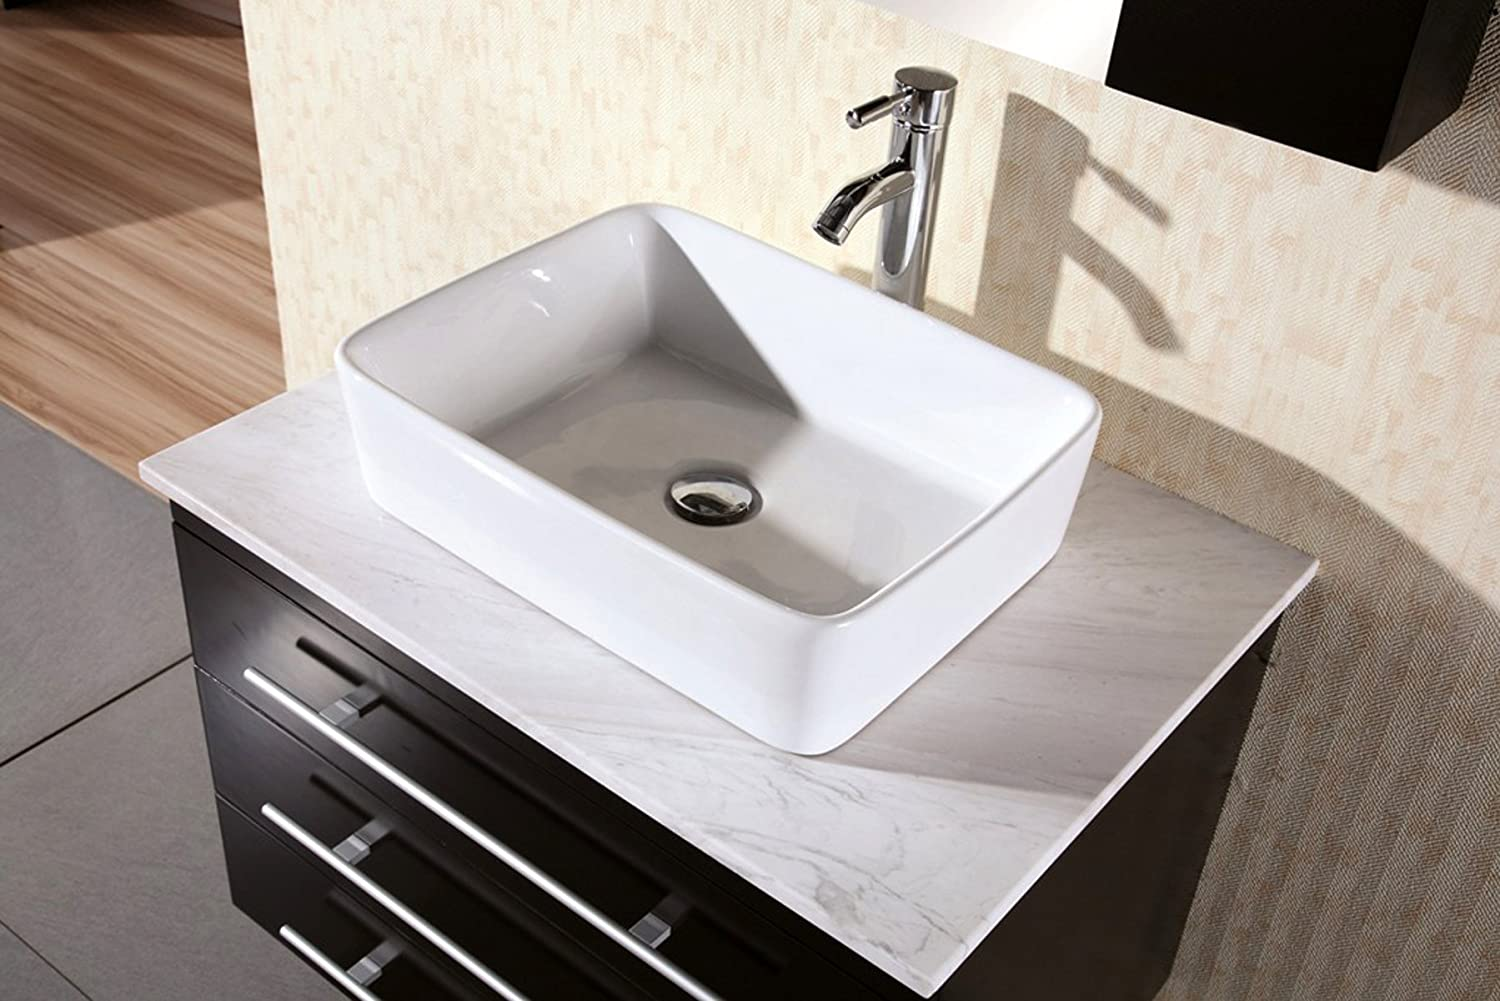 sink on top of vanity. Design Element Elton Wall Mount Single Vessel Sink Vanity with Carrera  White Marble Countertop 30 Inch Amazon com